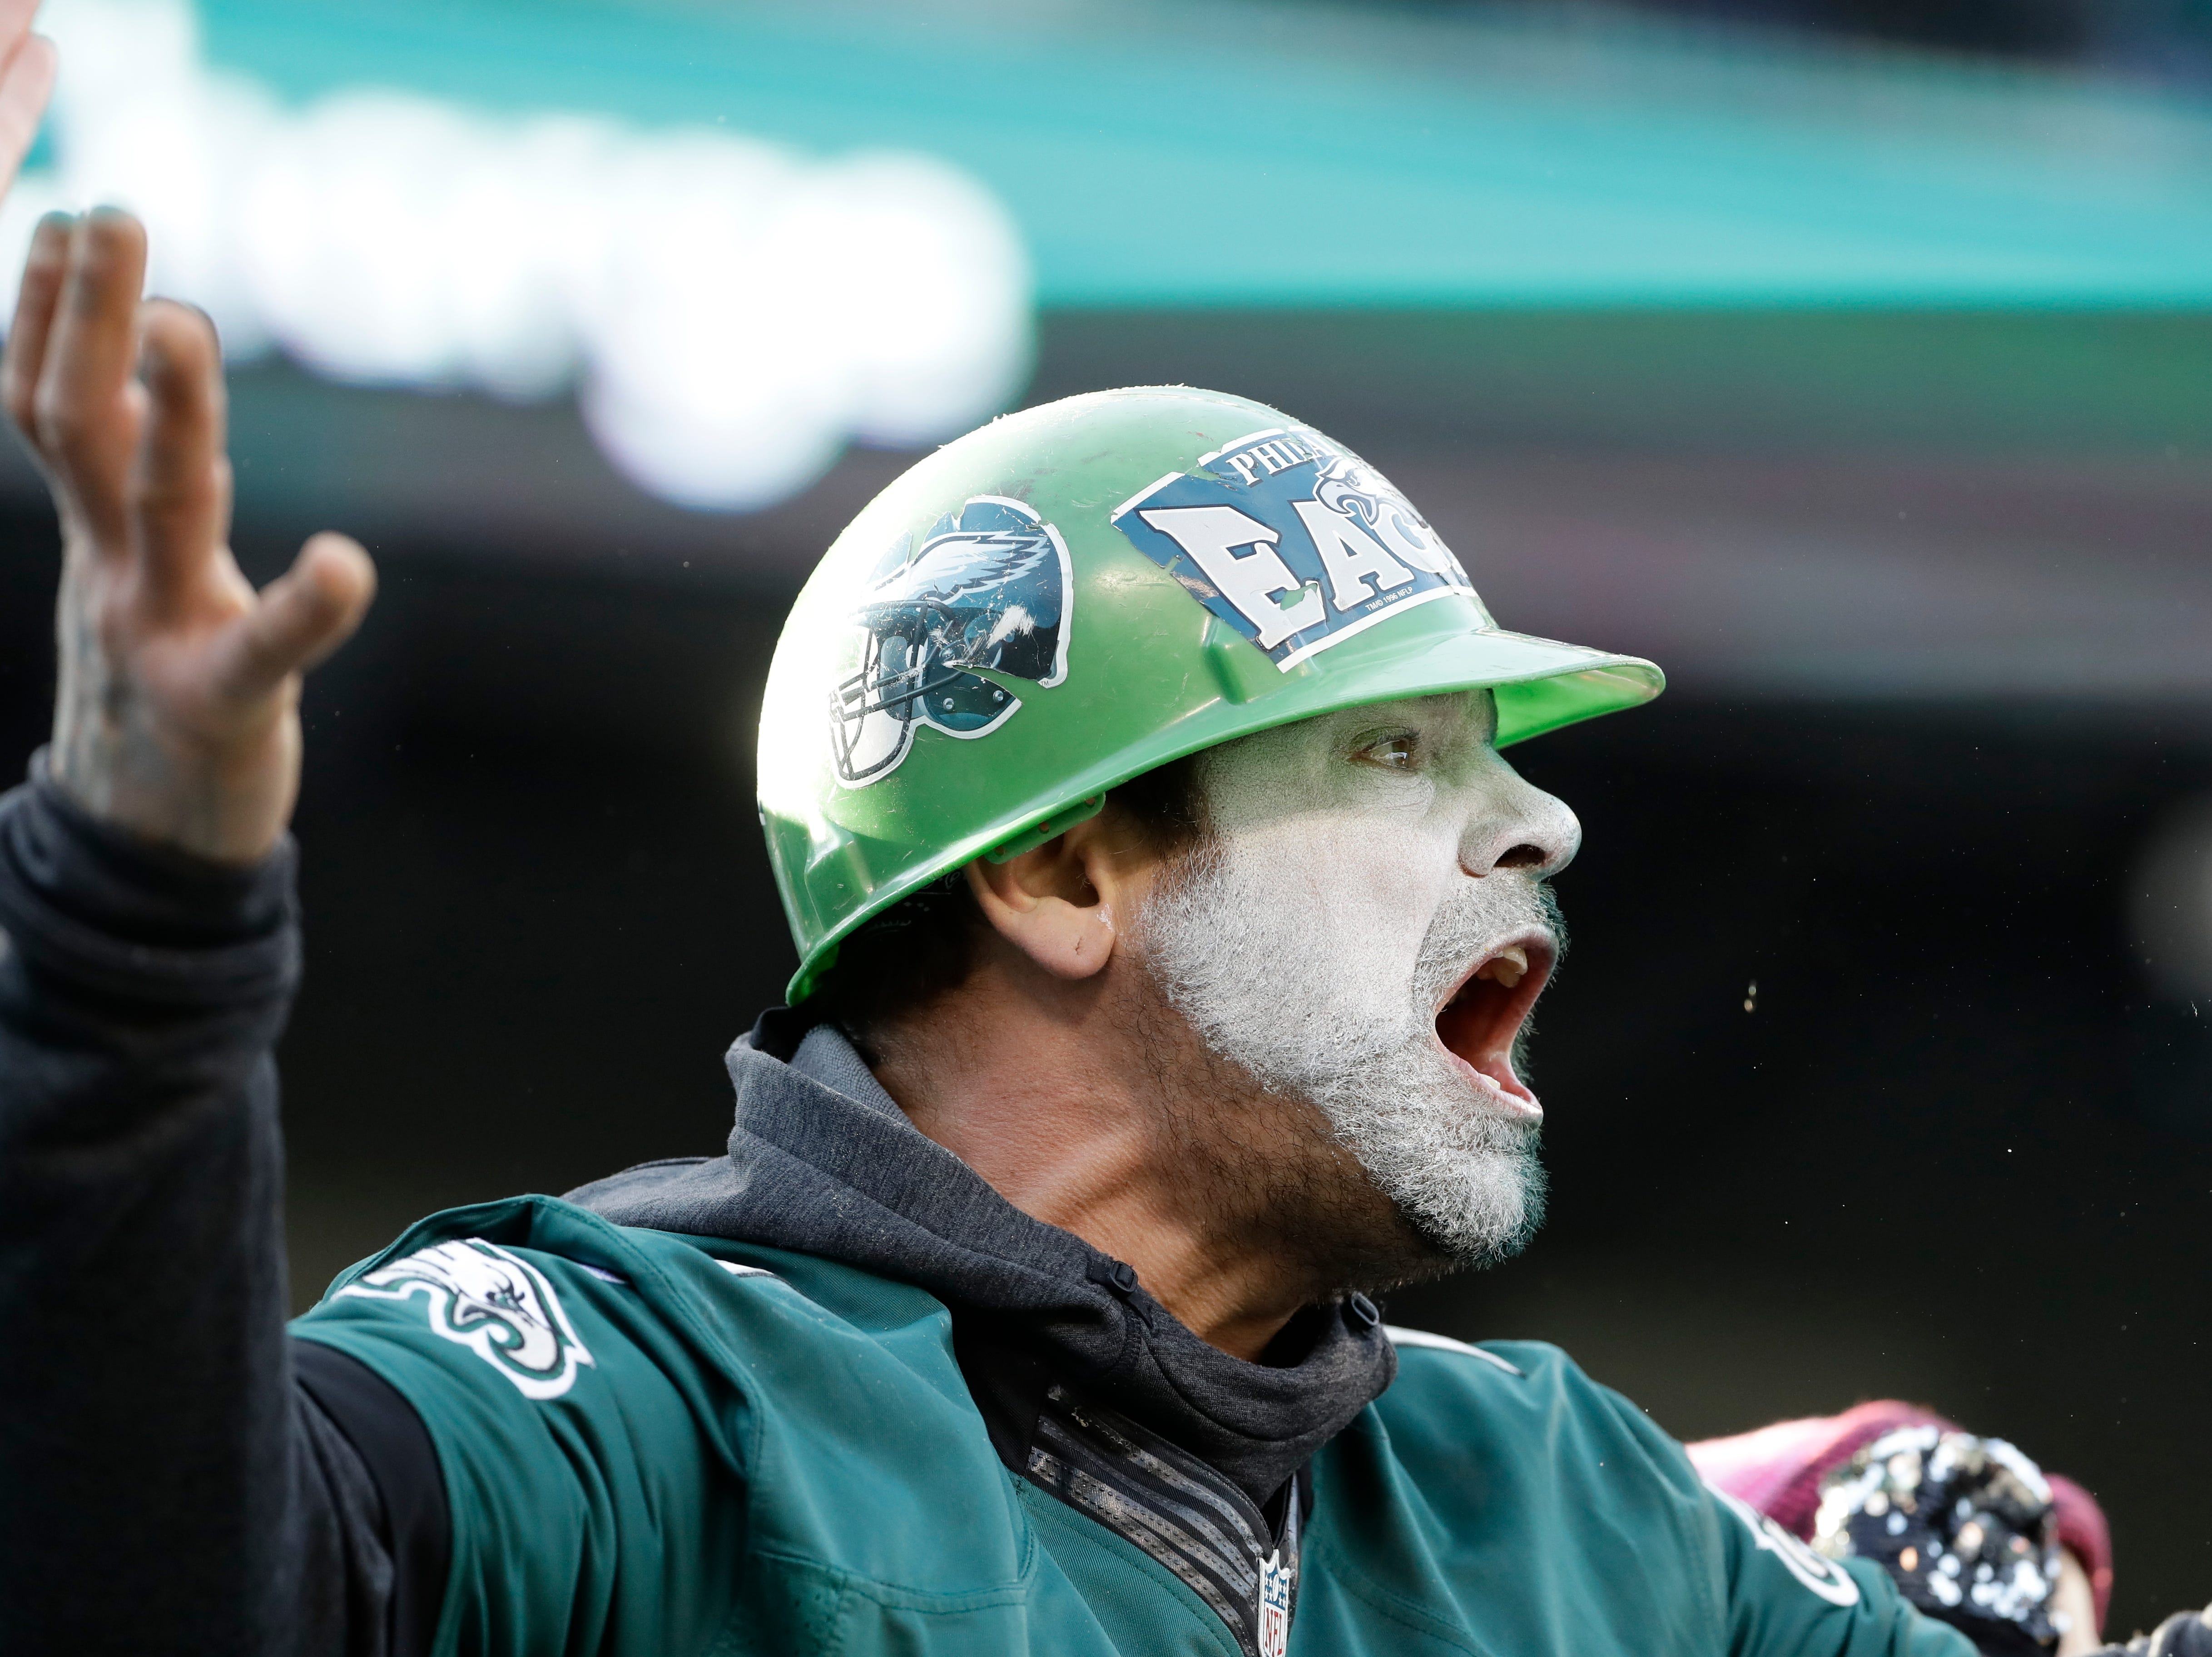 A Philadelphia Eagles' fan reacts to a call during the first half of an NFL football game against the Houston Texans, Sunday, Dec. 23, 2018, in Philadelphia. (AP Photo/Michael Perez)